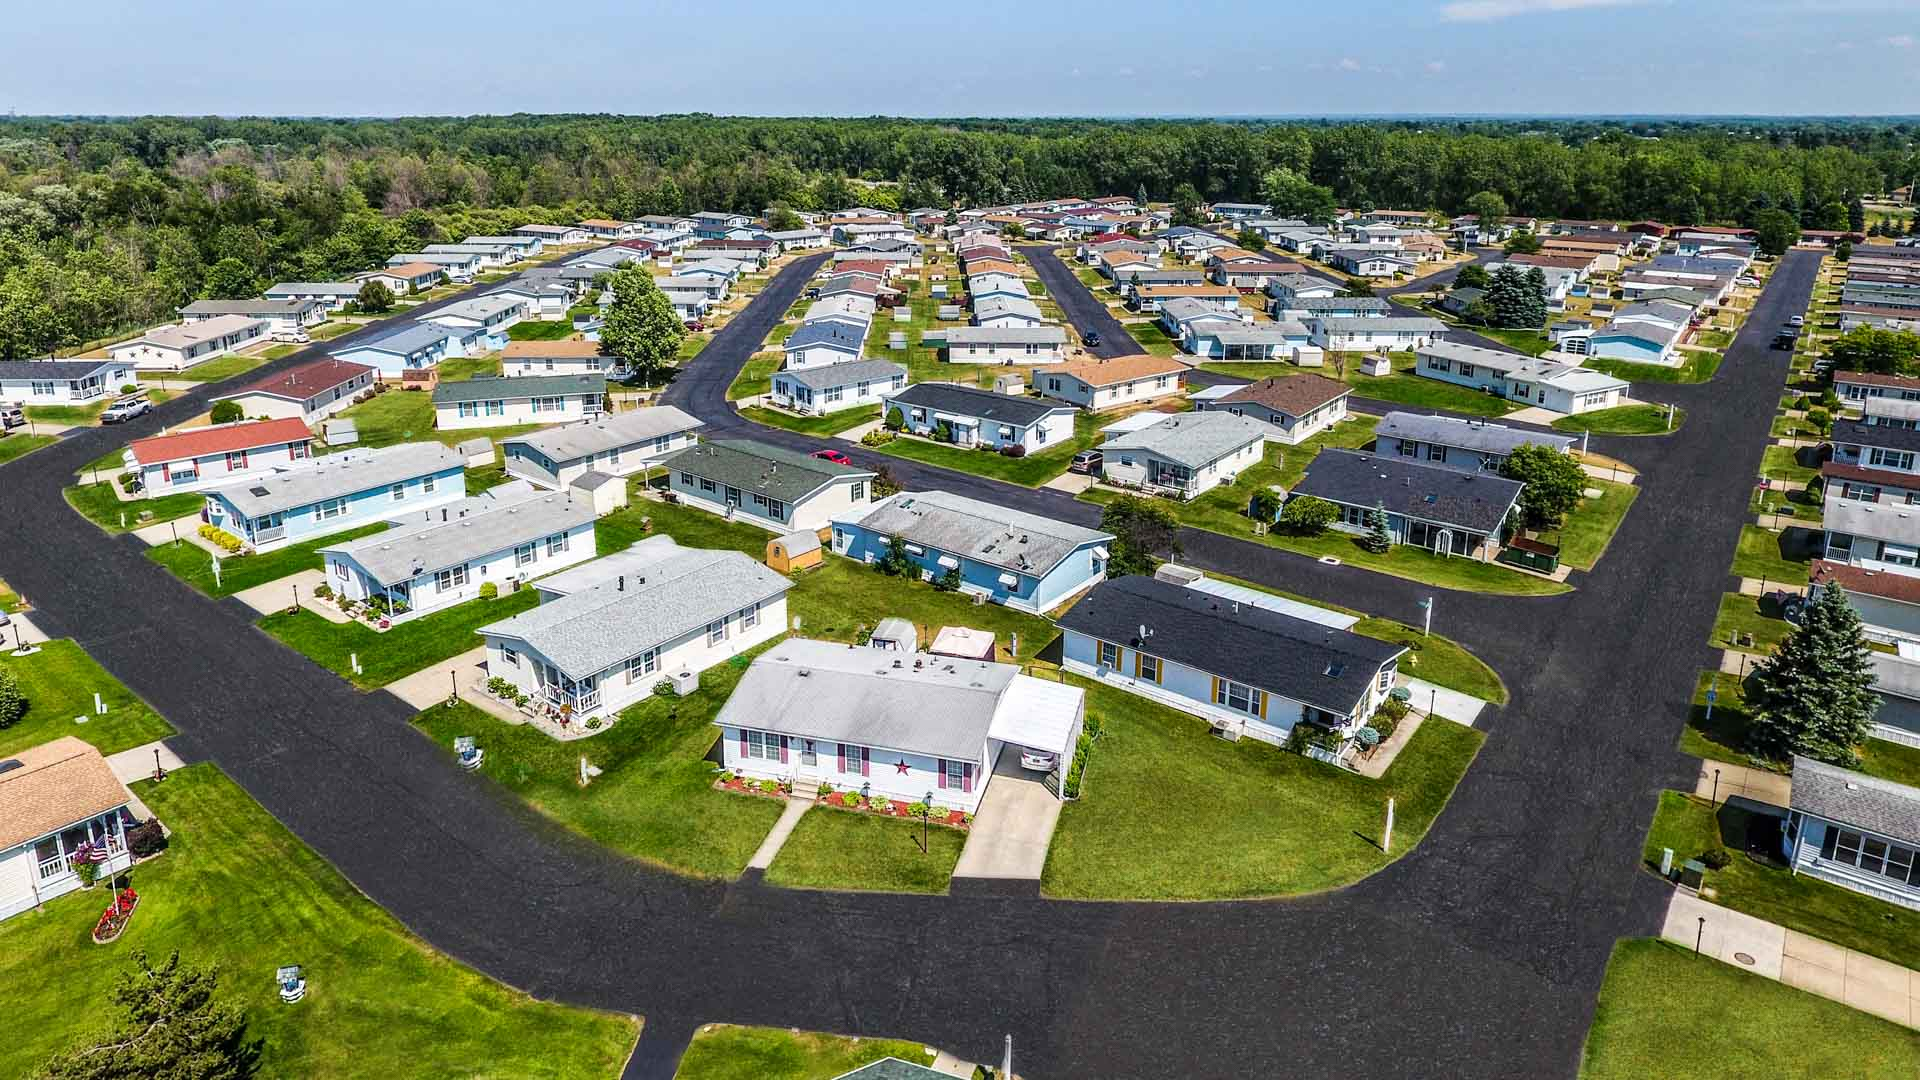 Parkside Village 55+ Manufactured Homes Community Aerial View in Buffalo, NY